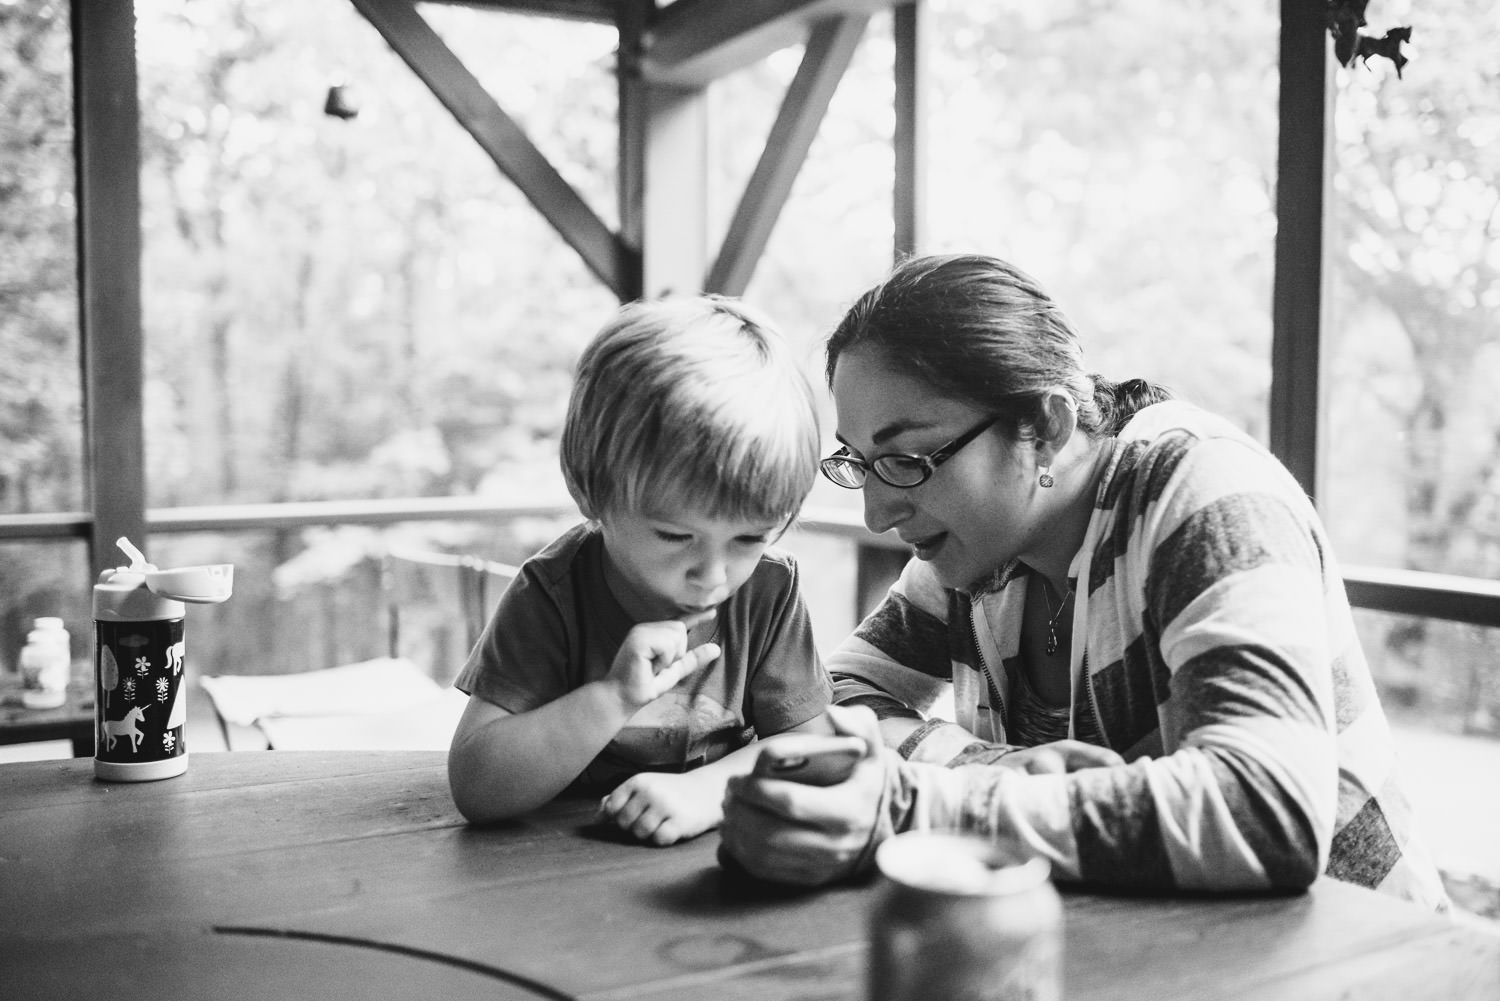 A boy and his aunt play a word game on a phone.